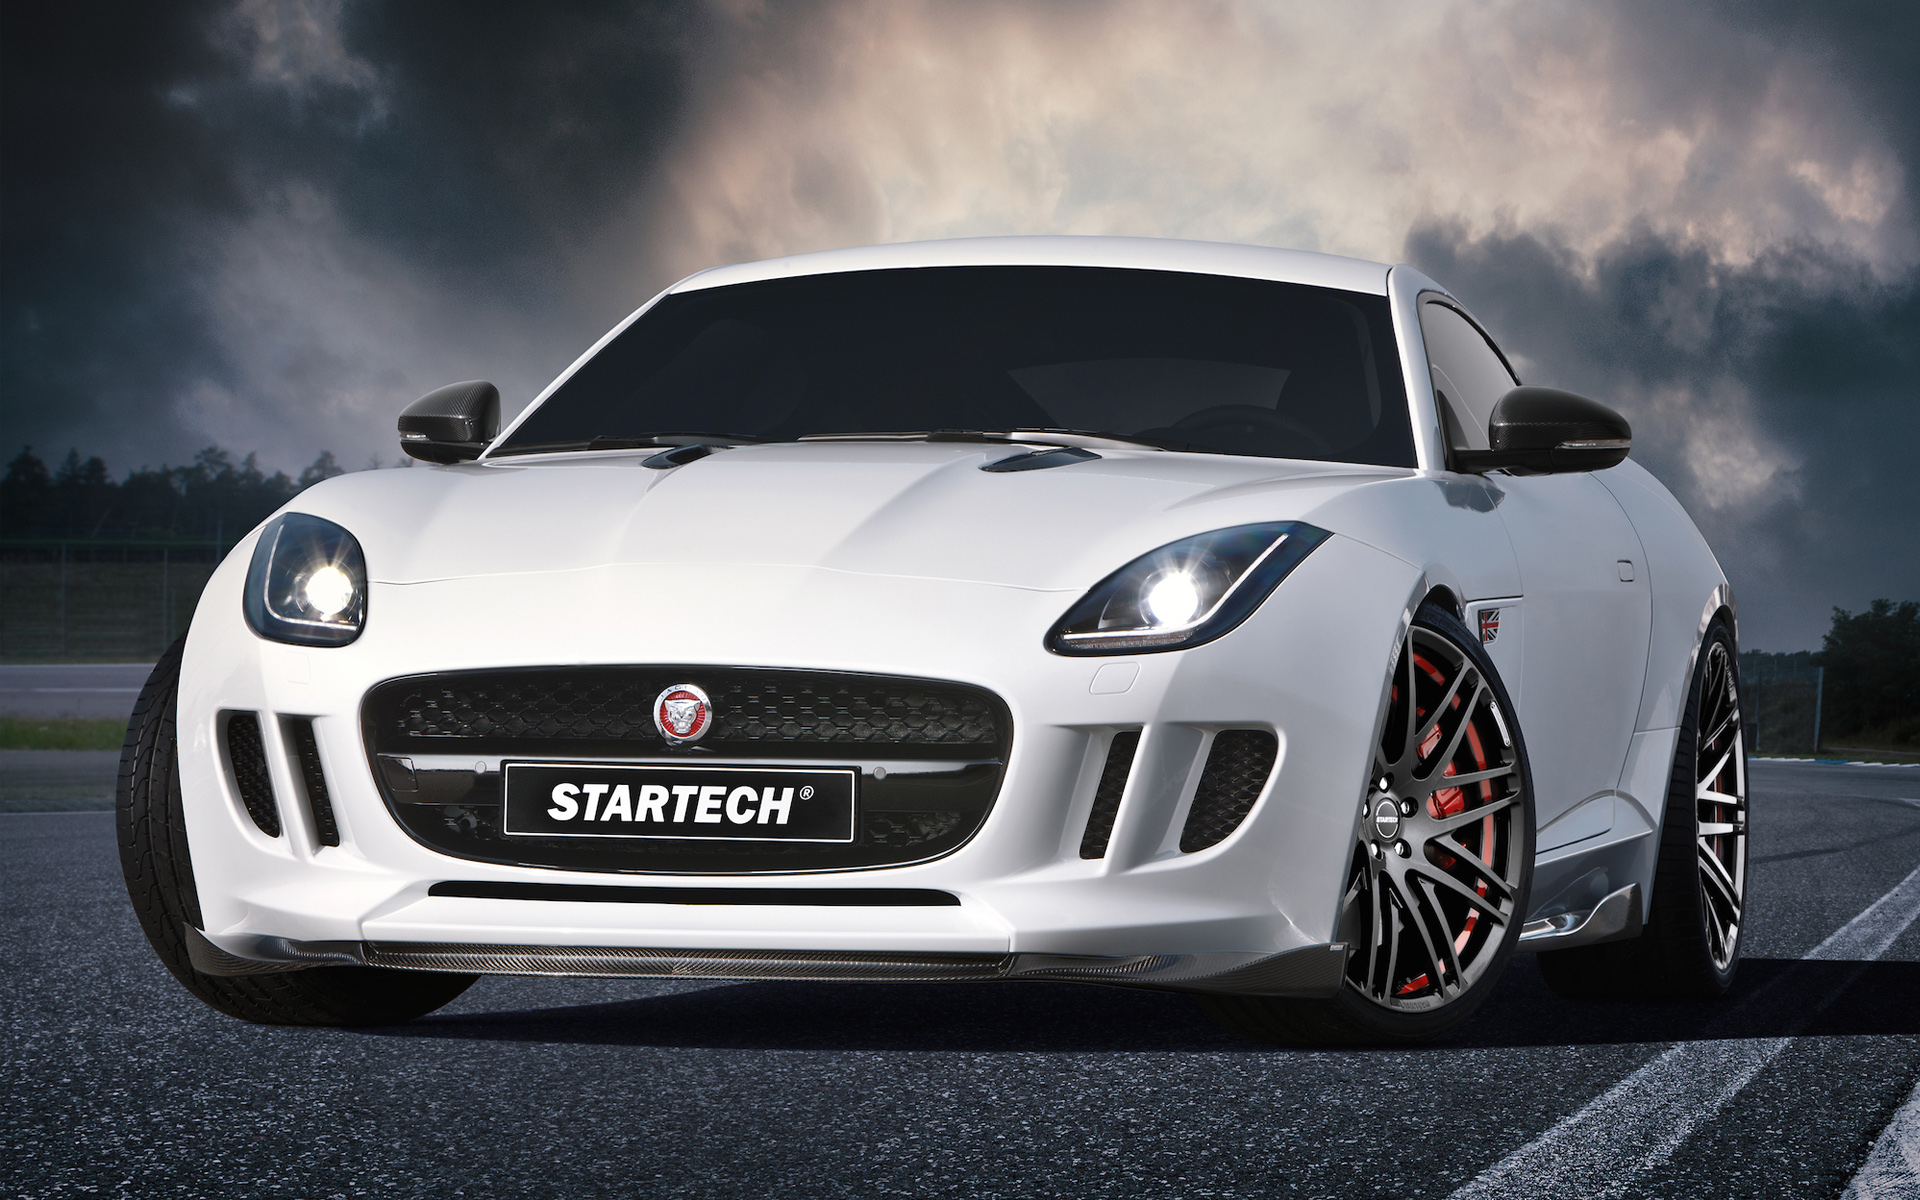 2015 startech jaguar f type coupe wallpaper hd car. Black Bedroom Furniture Sets. Home Design Ideas